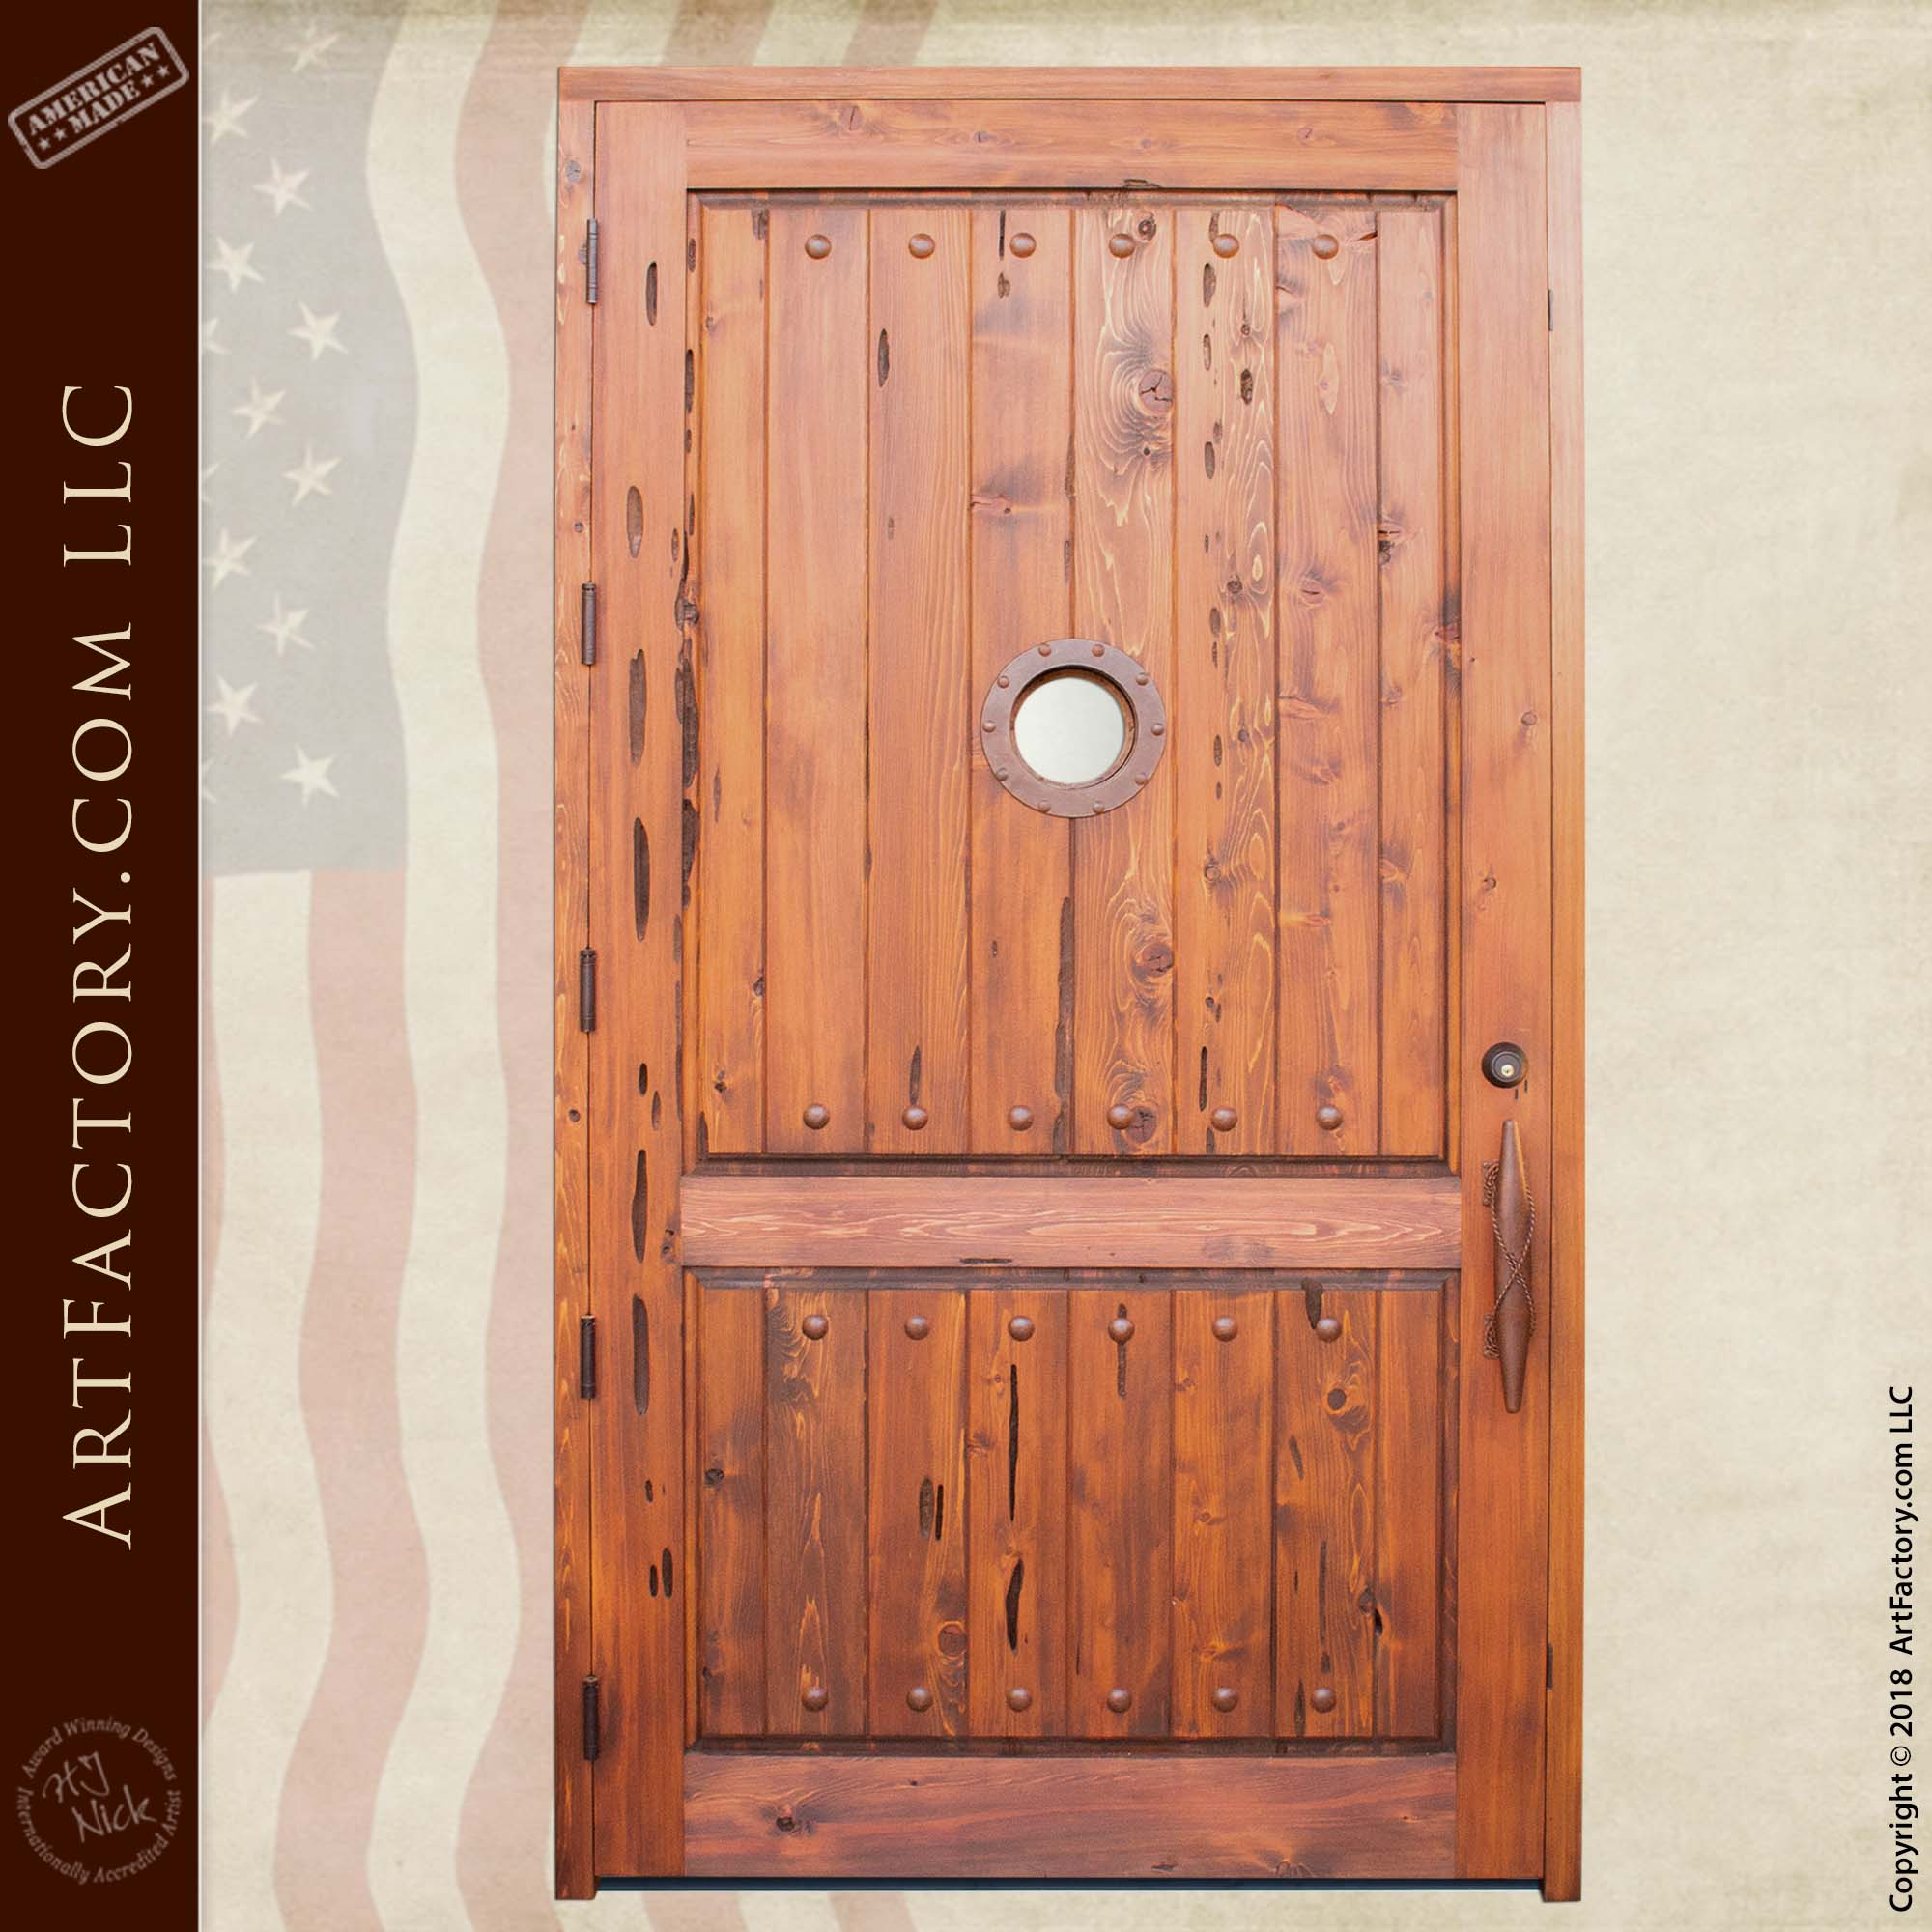 Nautical Theme Door with Portal Window